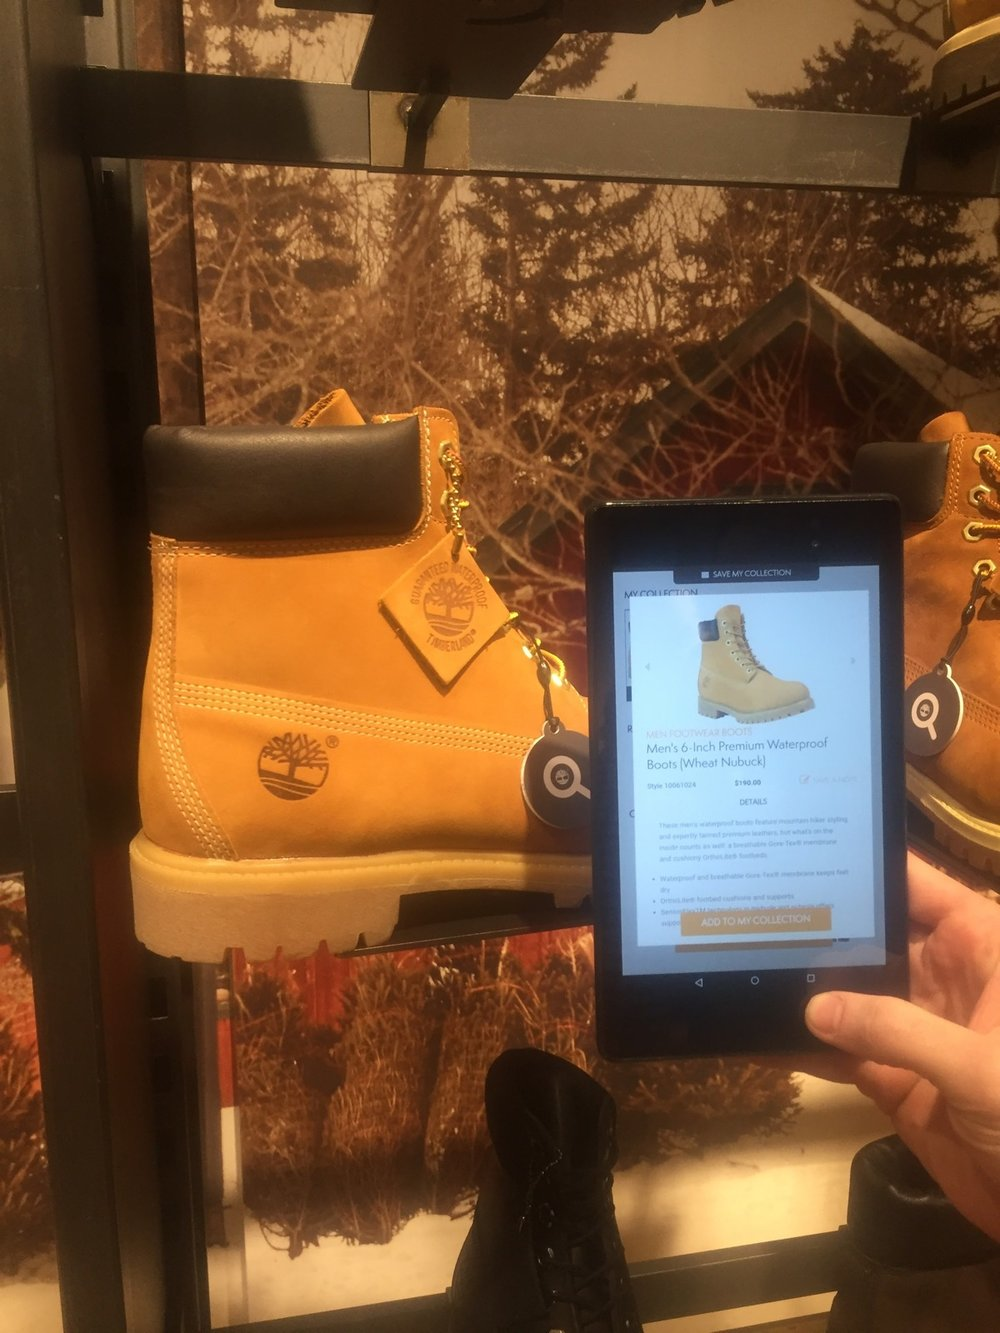 timberland-gallery-tap-action.jpg